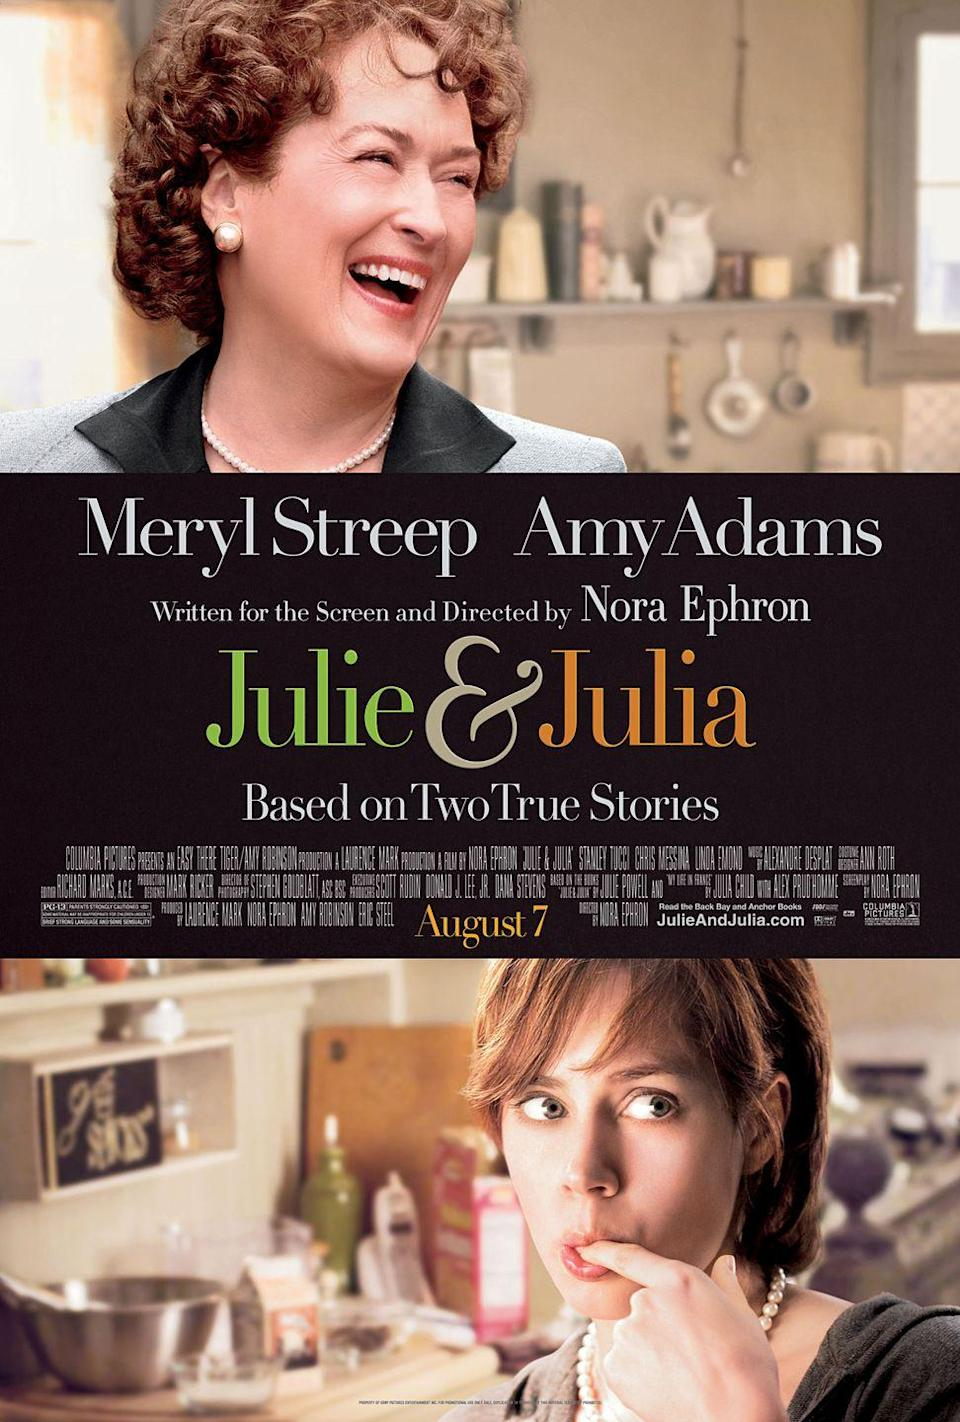 """<p><a class=""""link rapid-noclick-resp"""" href=""""https://www.amazon.com/Julie-Julia-Meryl-Streep/dp/B0094LTWDM/ref=sr_1_1?dchild=1&keywords=julie+and+julia&qid=1614179983&sr=8-1&tag=syn-yahoo-20&ascsubtag=%5Bartid%7C10063.g.35716832%5Bsrc%7Cyahoo-us"""" rel=""""nofollow noopener"""" target=""""_blank"""" data-ylk=""""slk:Watch Now"""">Watch Now</a></p><p>This feel good comedy starring Amy Adams and Meryl Streep is based on Julie Powell's daily blog, where she documented her attempt to recreate each of Julia Child's recipes from her cookbook """"Mastering The Art Of French Cooking"""" (all 524 of them). Foodies and aspiring home cooks alike will love this upbeat classic. </p>"""